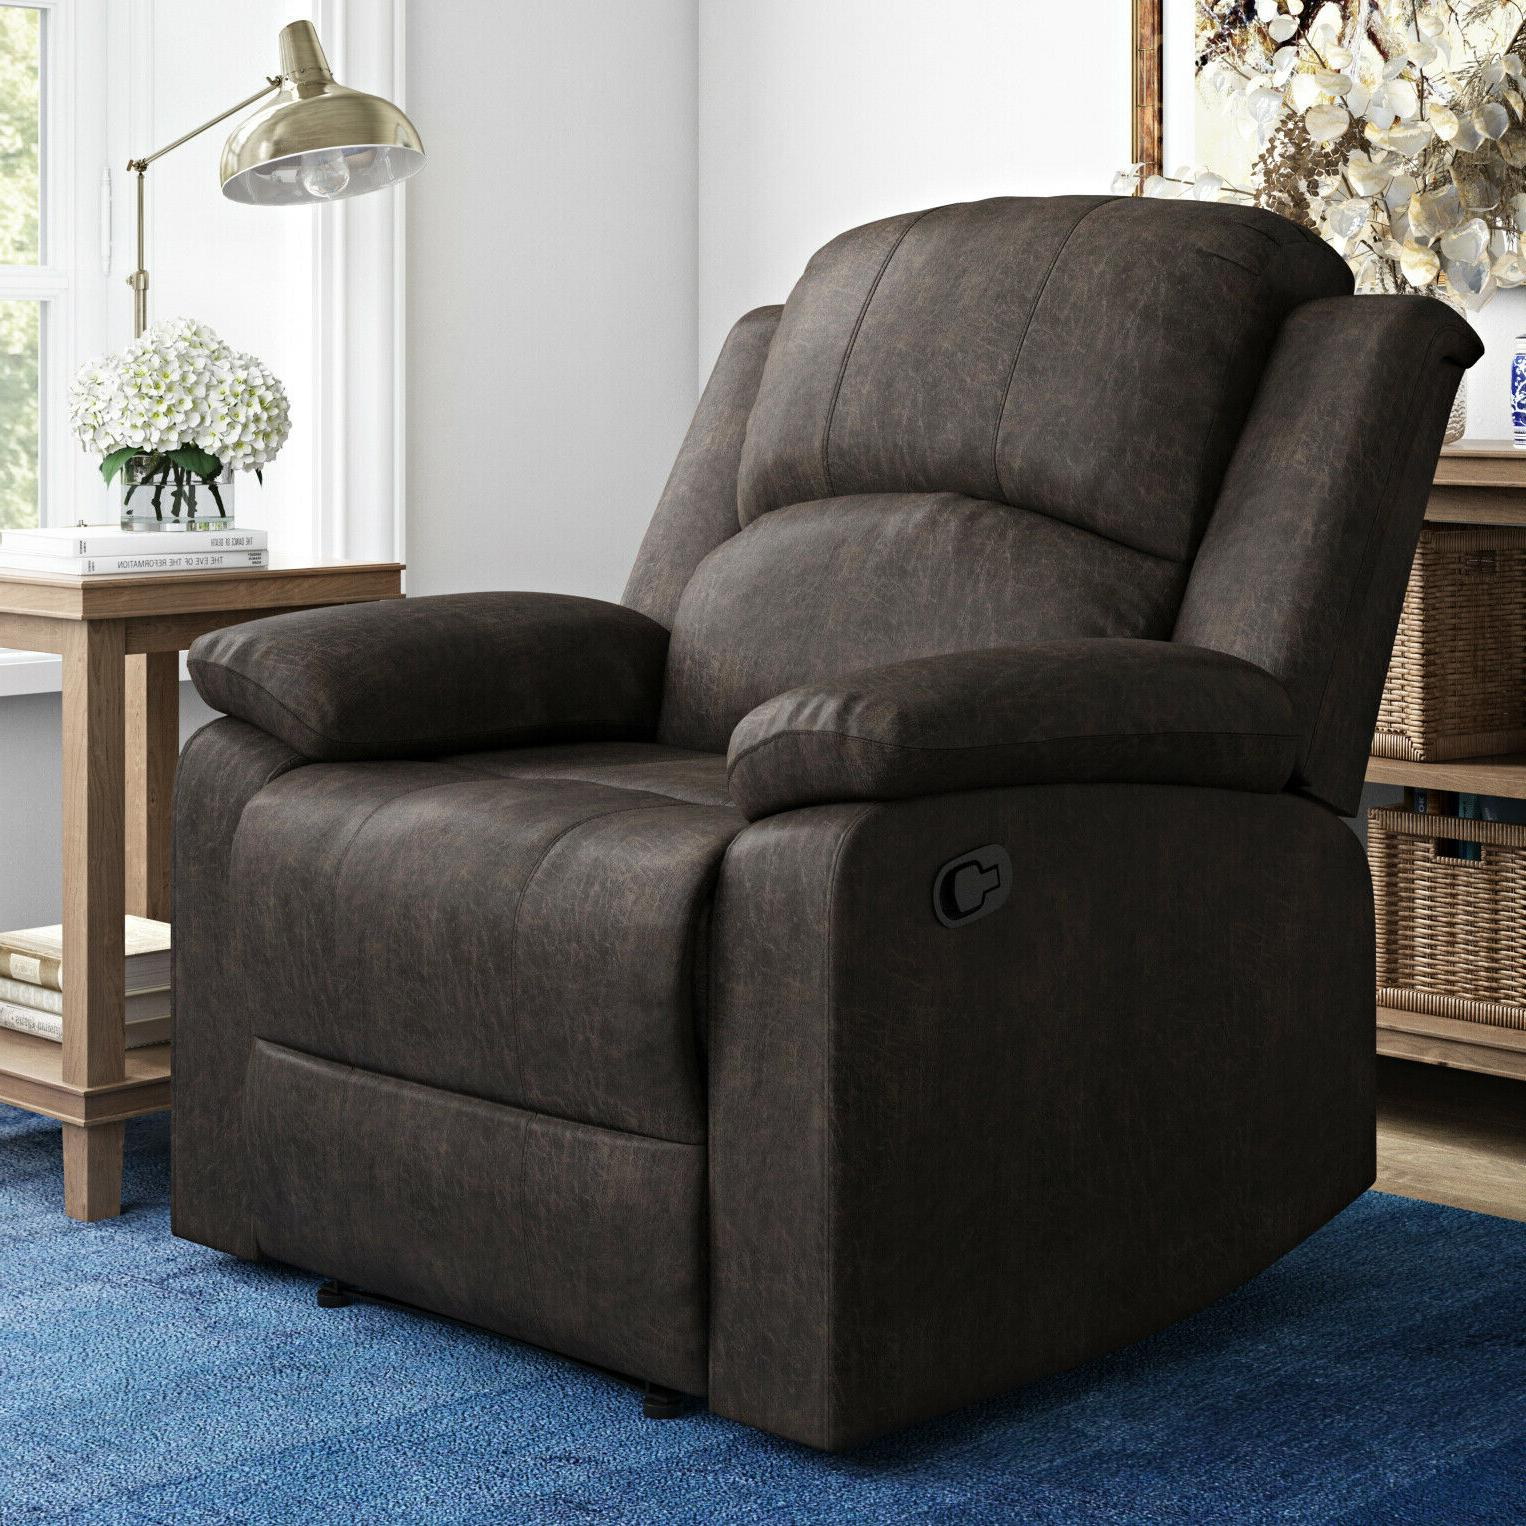 manual recliner large armchair faux suede lifestyle